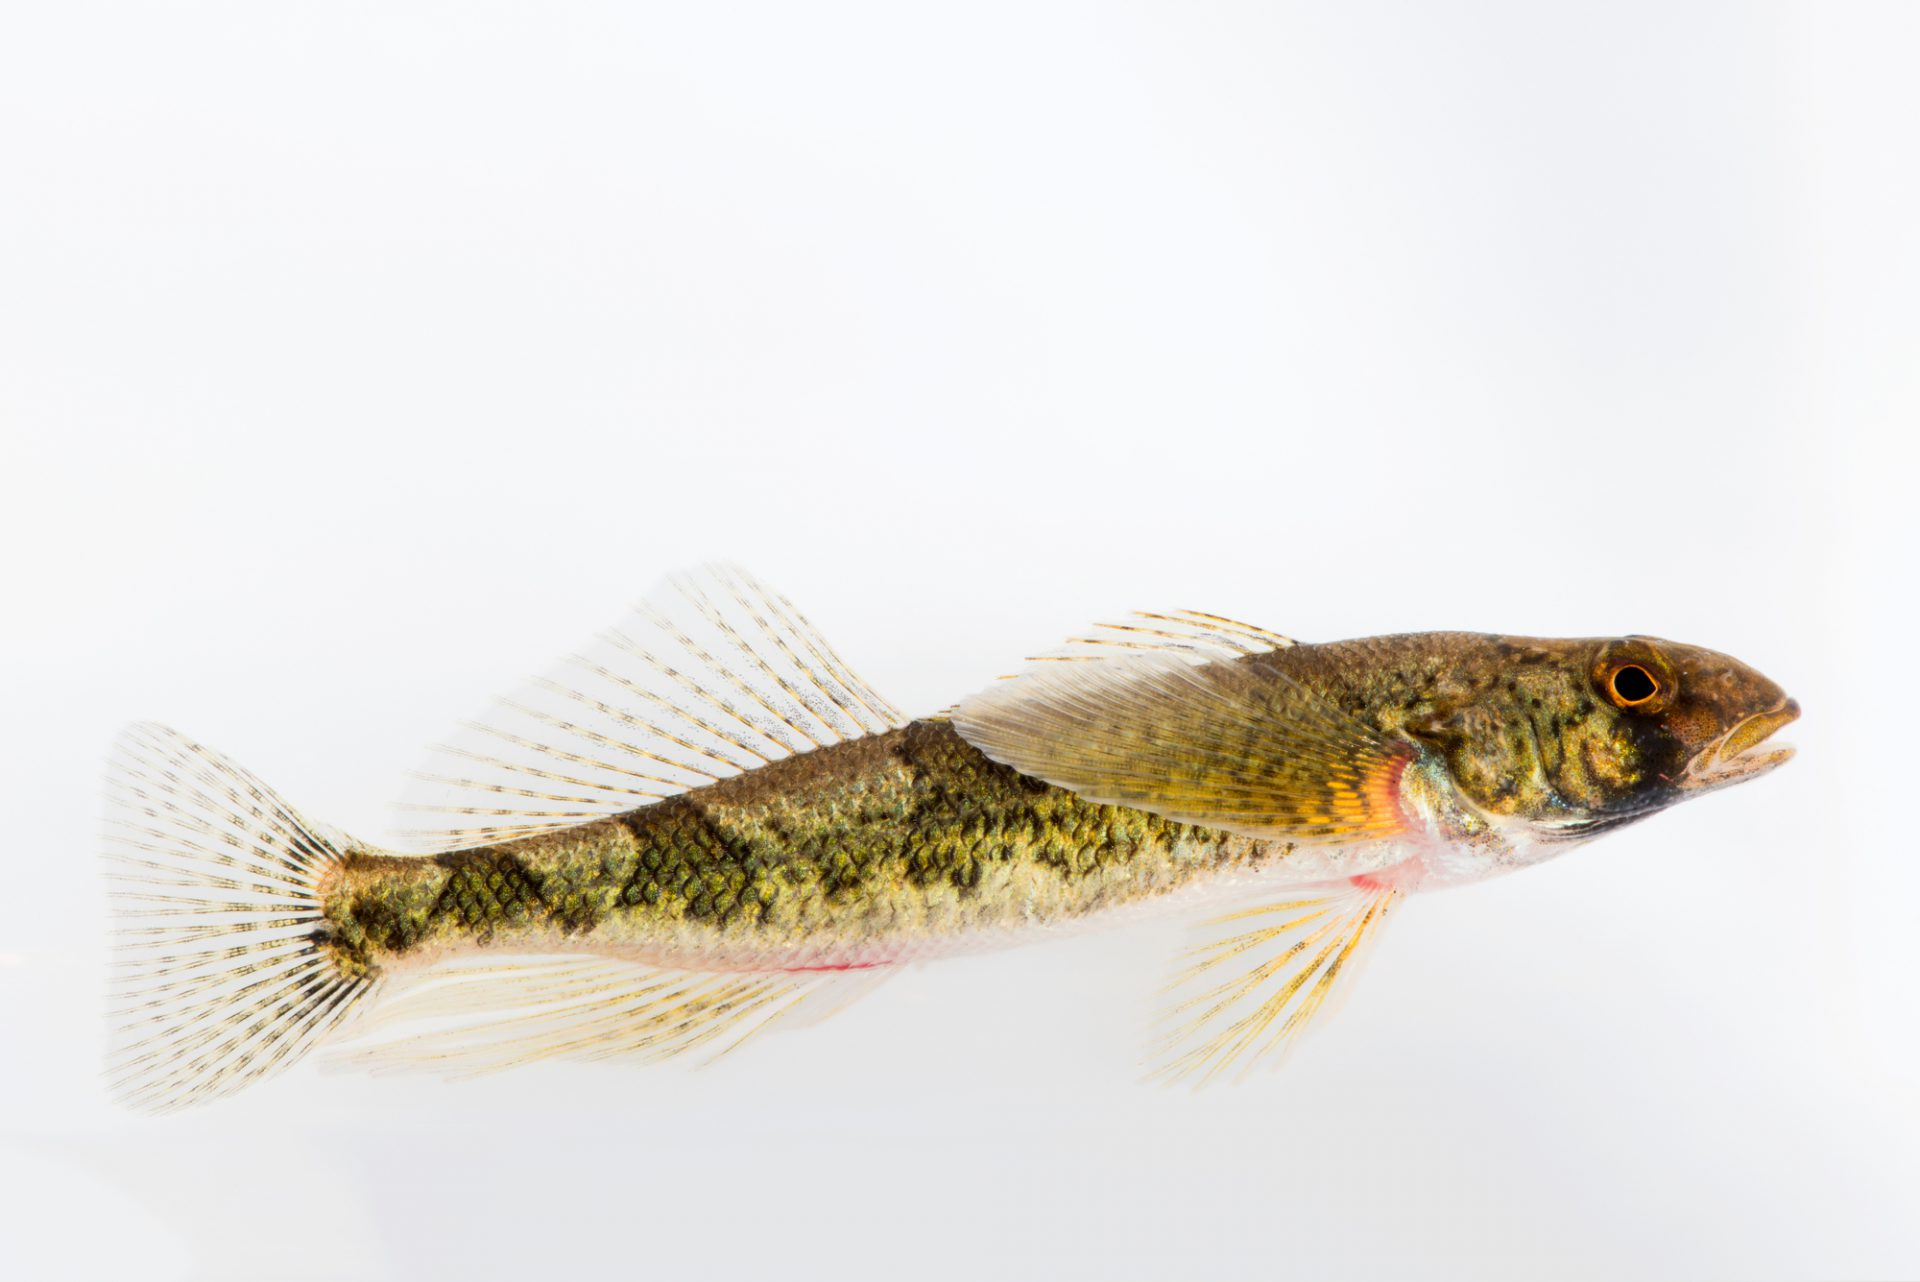 Photo: Snail darter (Percina tanasi) at Conservation Fisheries.